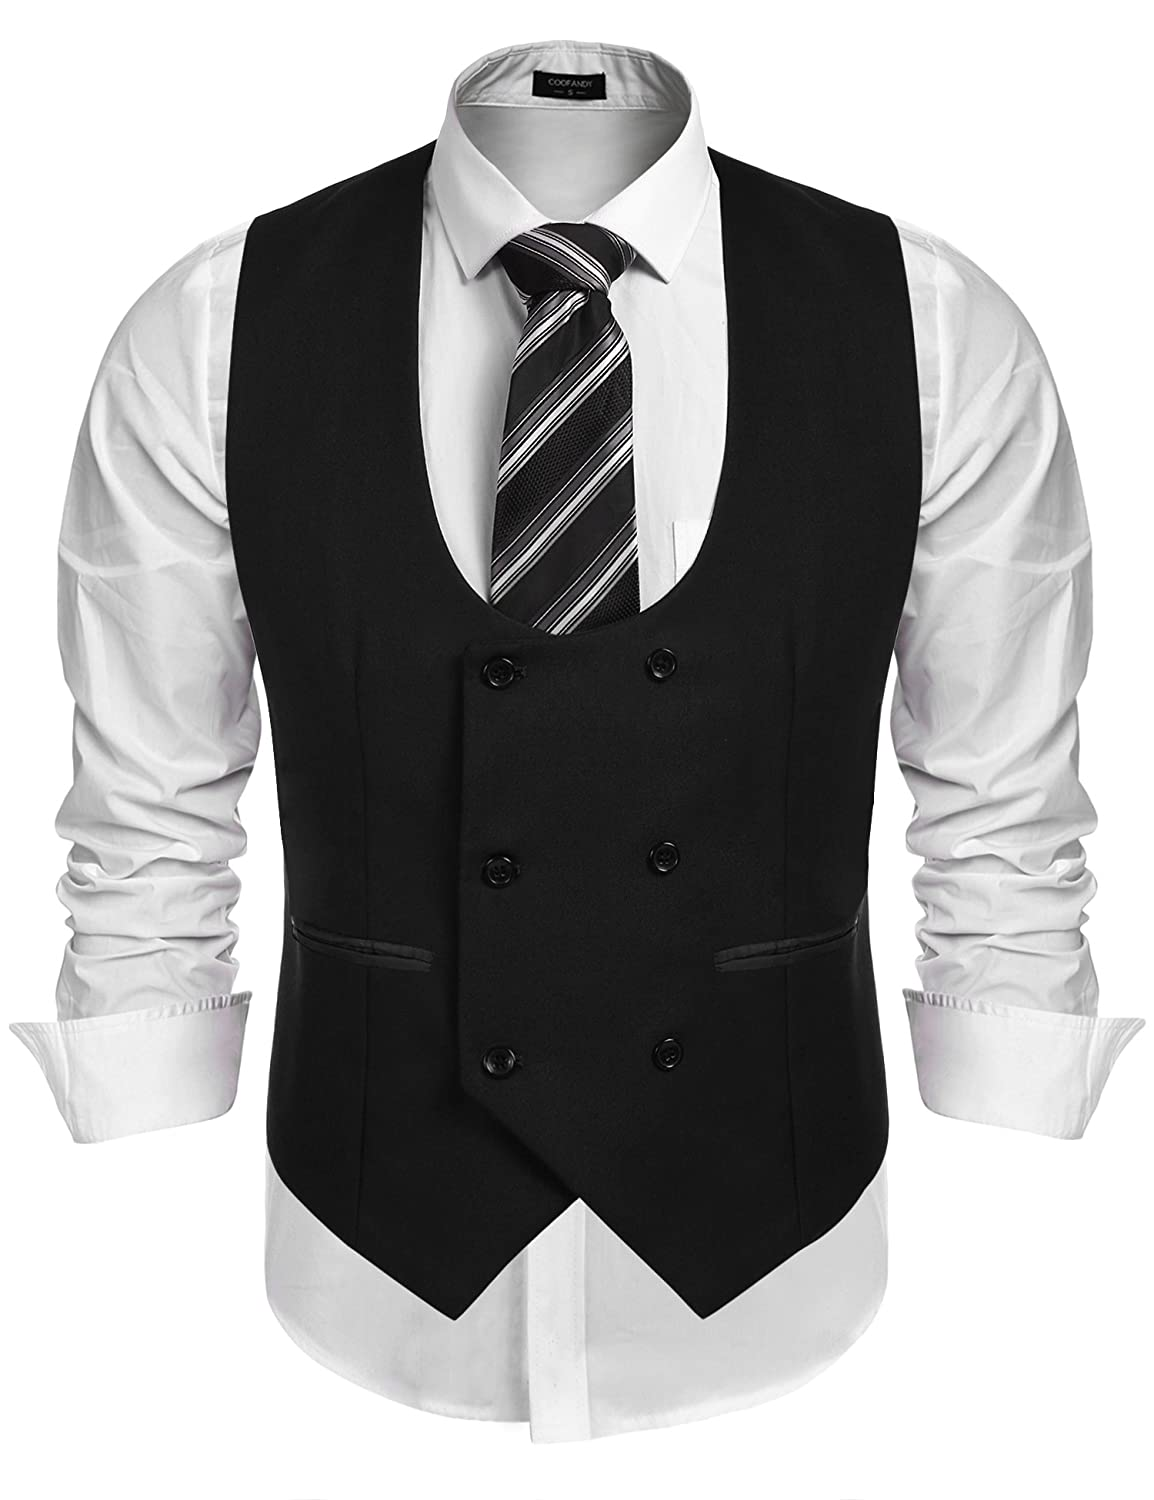 1920s Style Mens Vests COOFANDY Mens Slim Fit Sleeveless Suit Vest Double Breasted Business Dress Waistcoat $29.99 AT vintagedancer.com